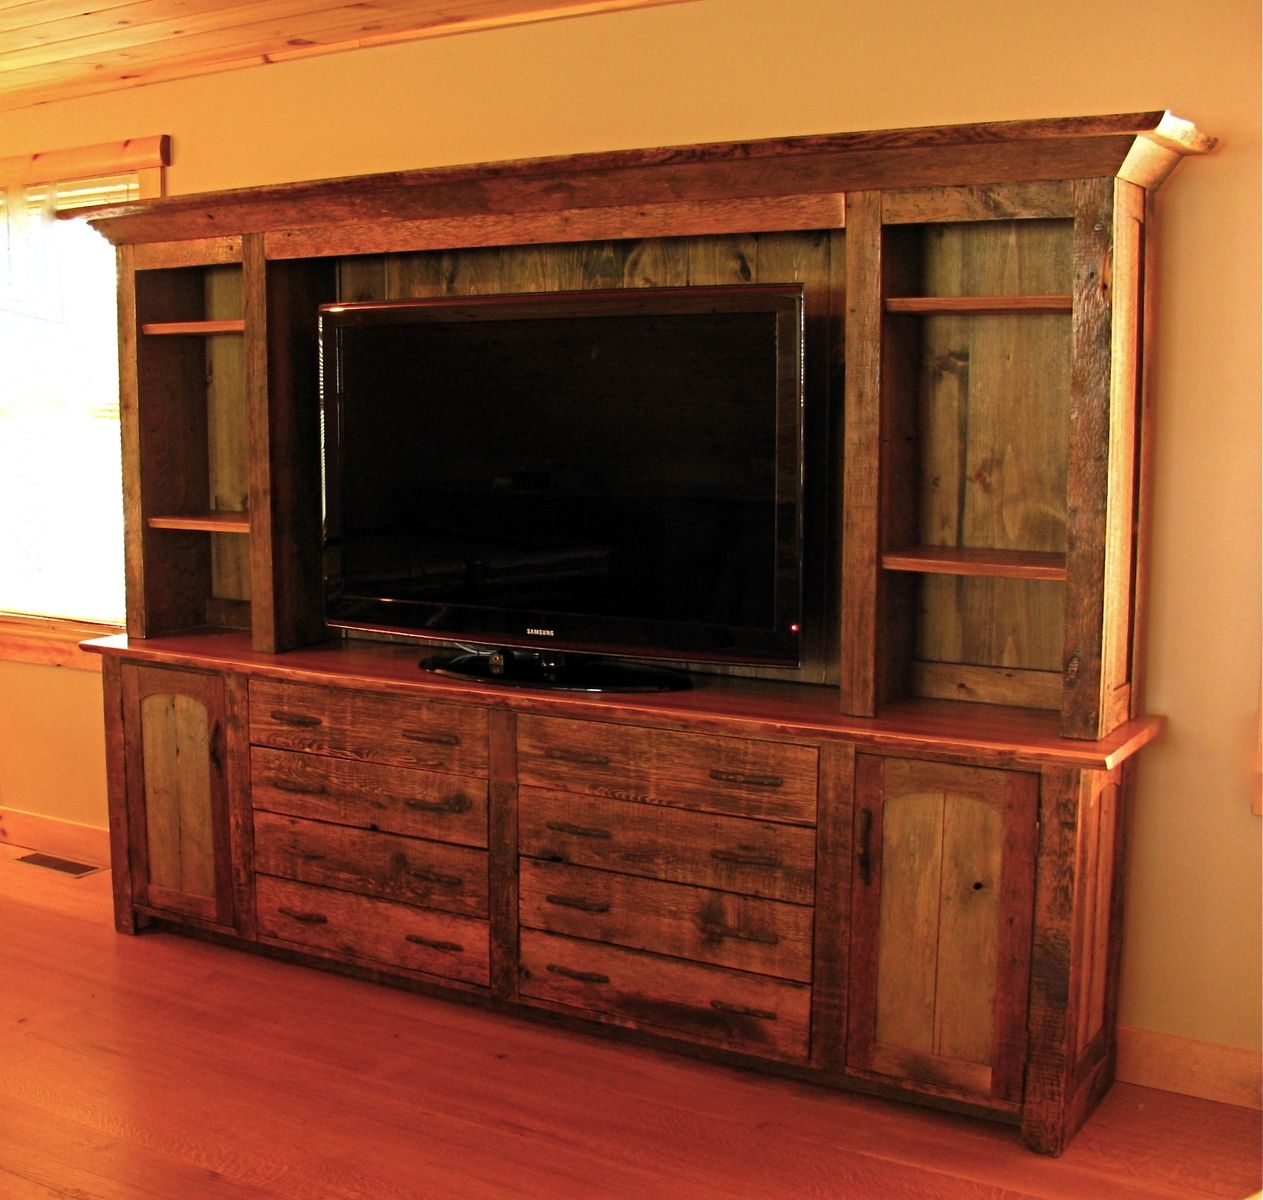 Hand made rustic entertainment center by custom rustic furniture by don mcaulay sr jr Wooden entertainment center furniture